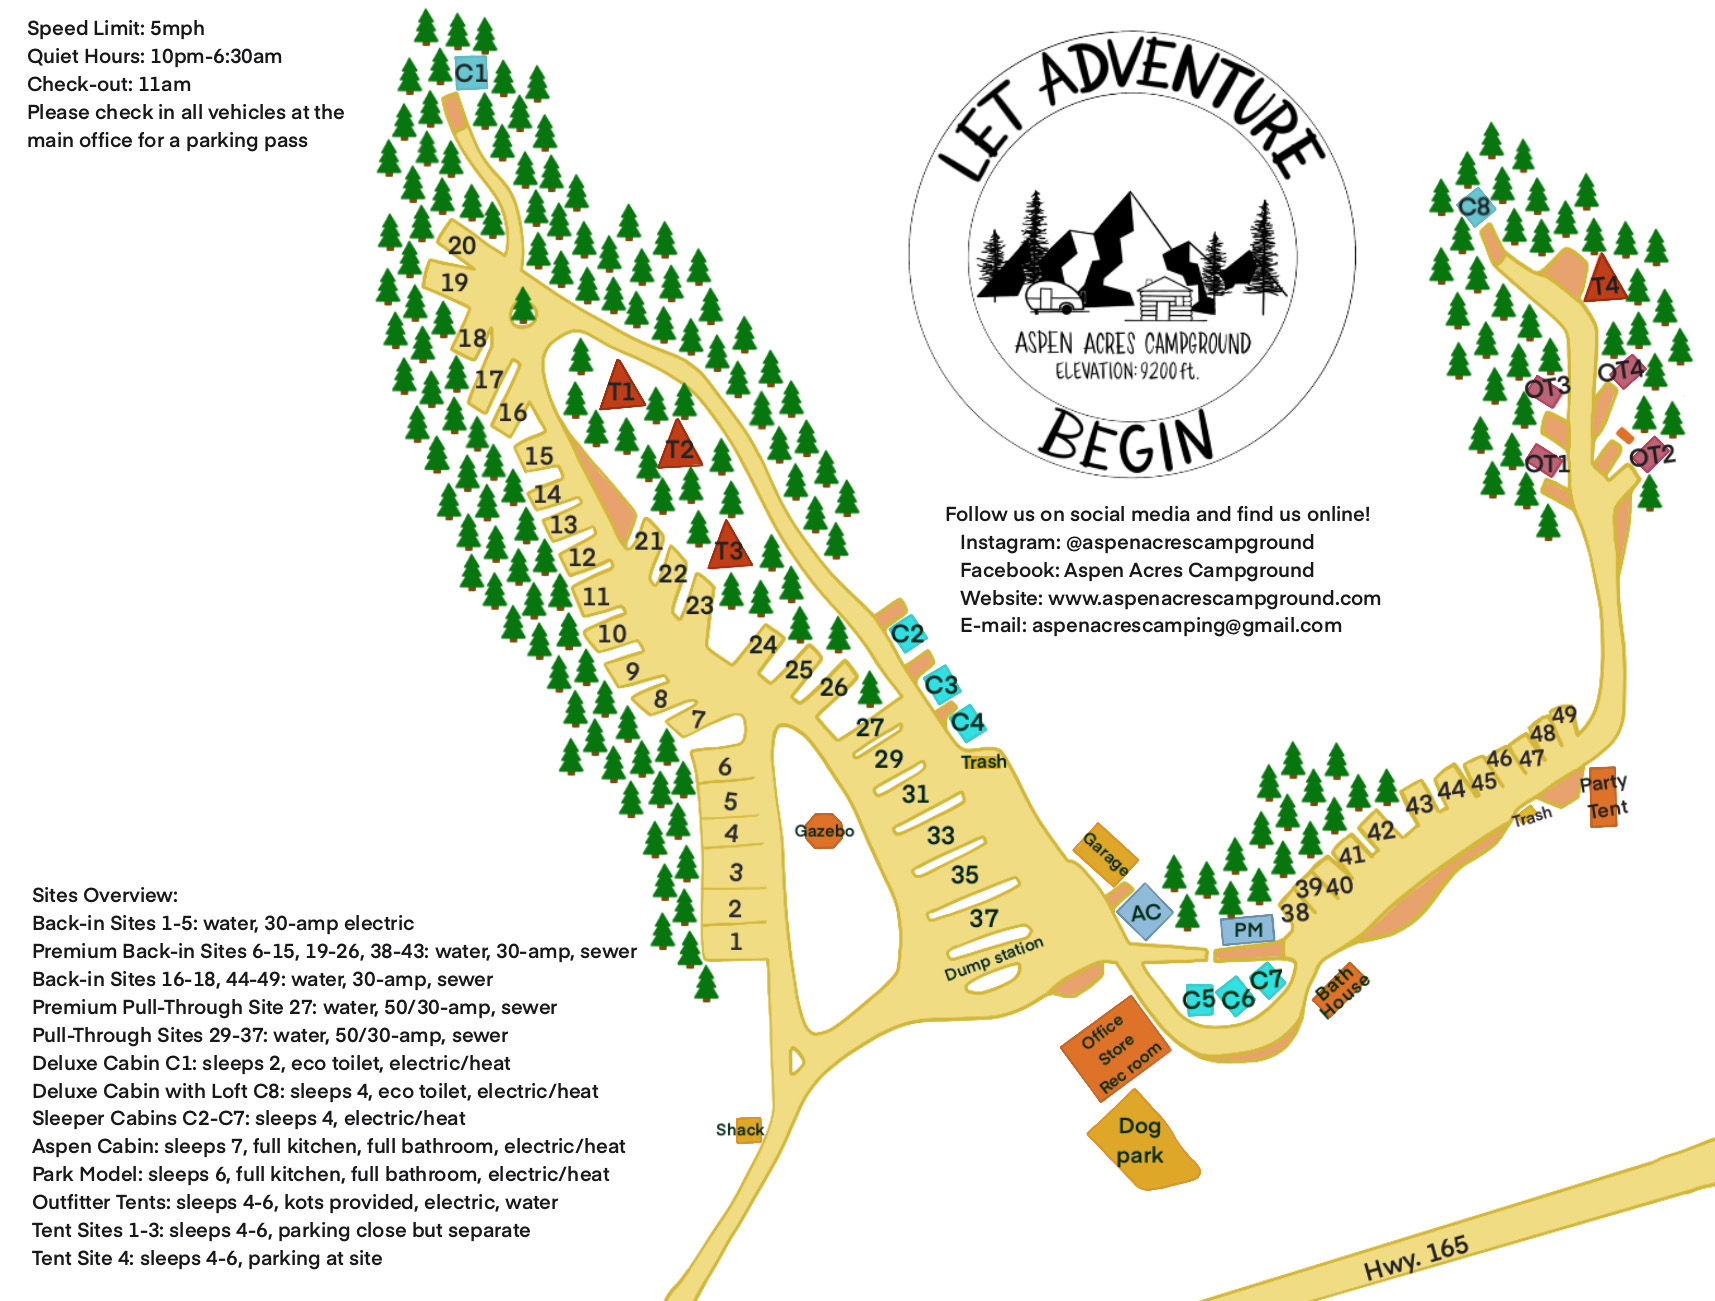 Aspen Acres Campground - Campground Map